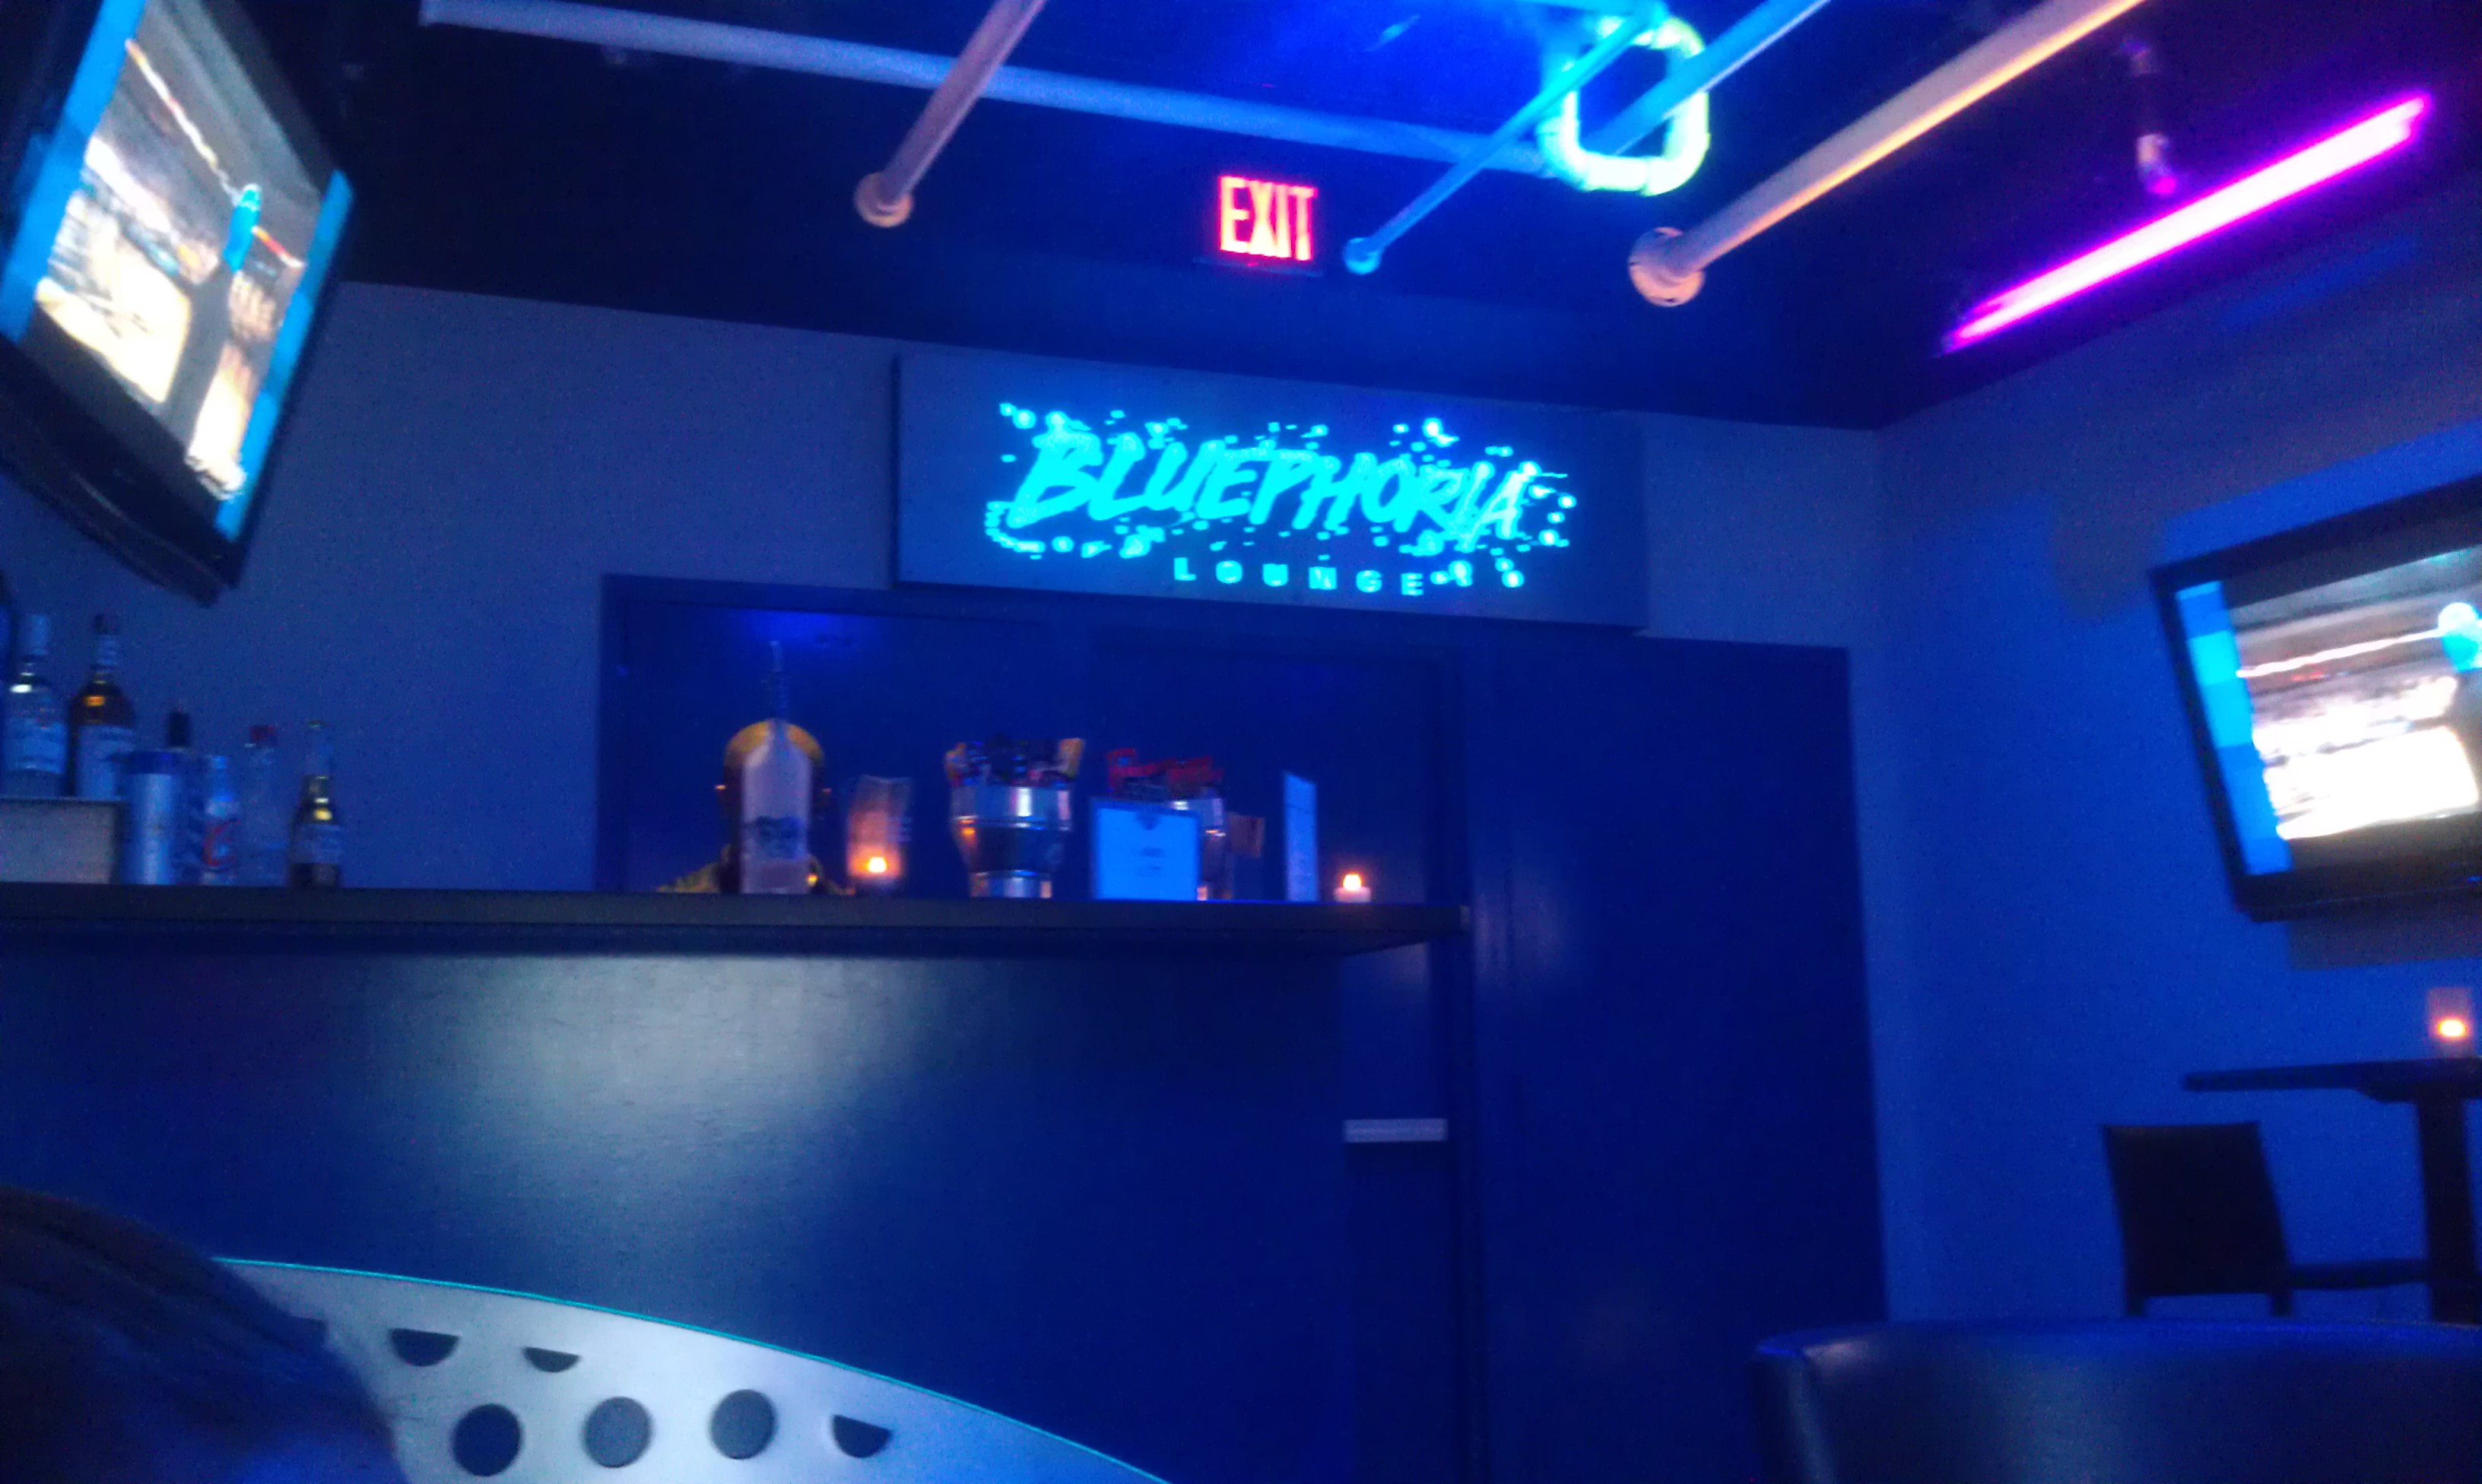 Behind the thrills bluephoria lounge at blue man group orlando value above the crowds - Blue man group box office ...